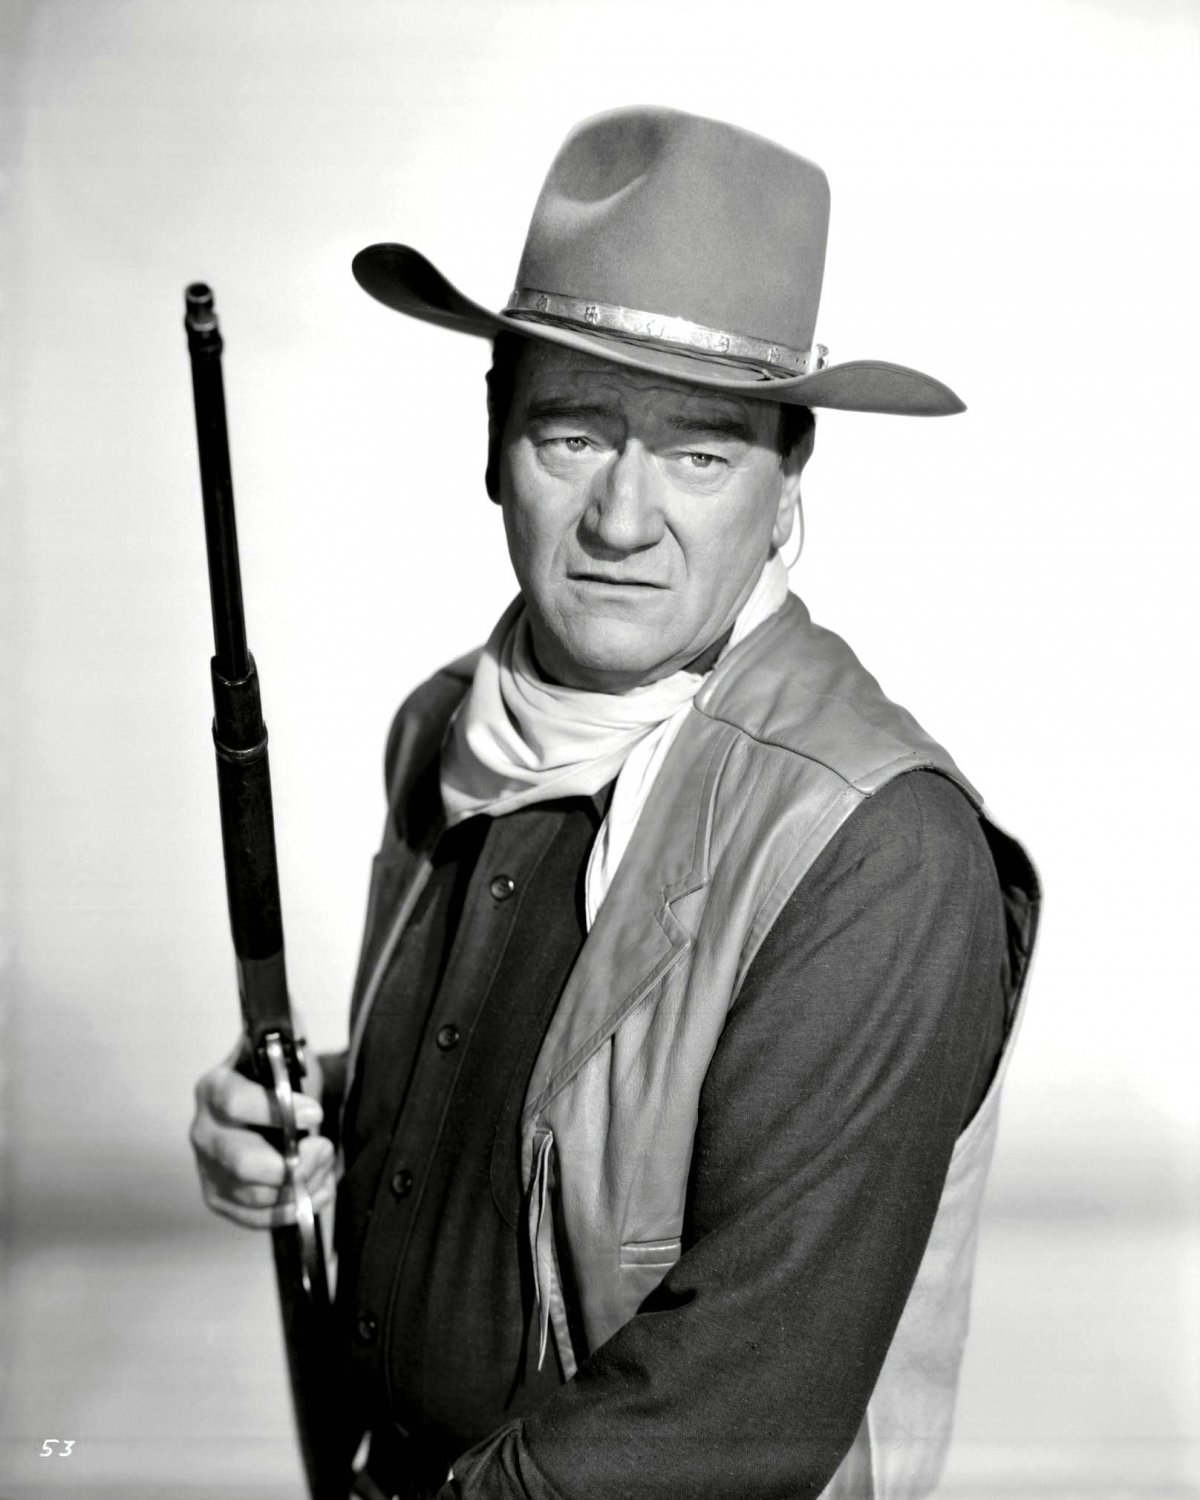 JOHN WAYNE LEGENDARY FILM STAR - 8X10 PHOTO (ZZ-630)